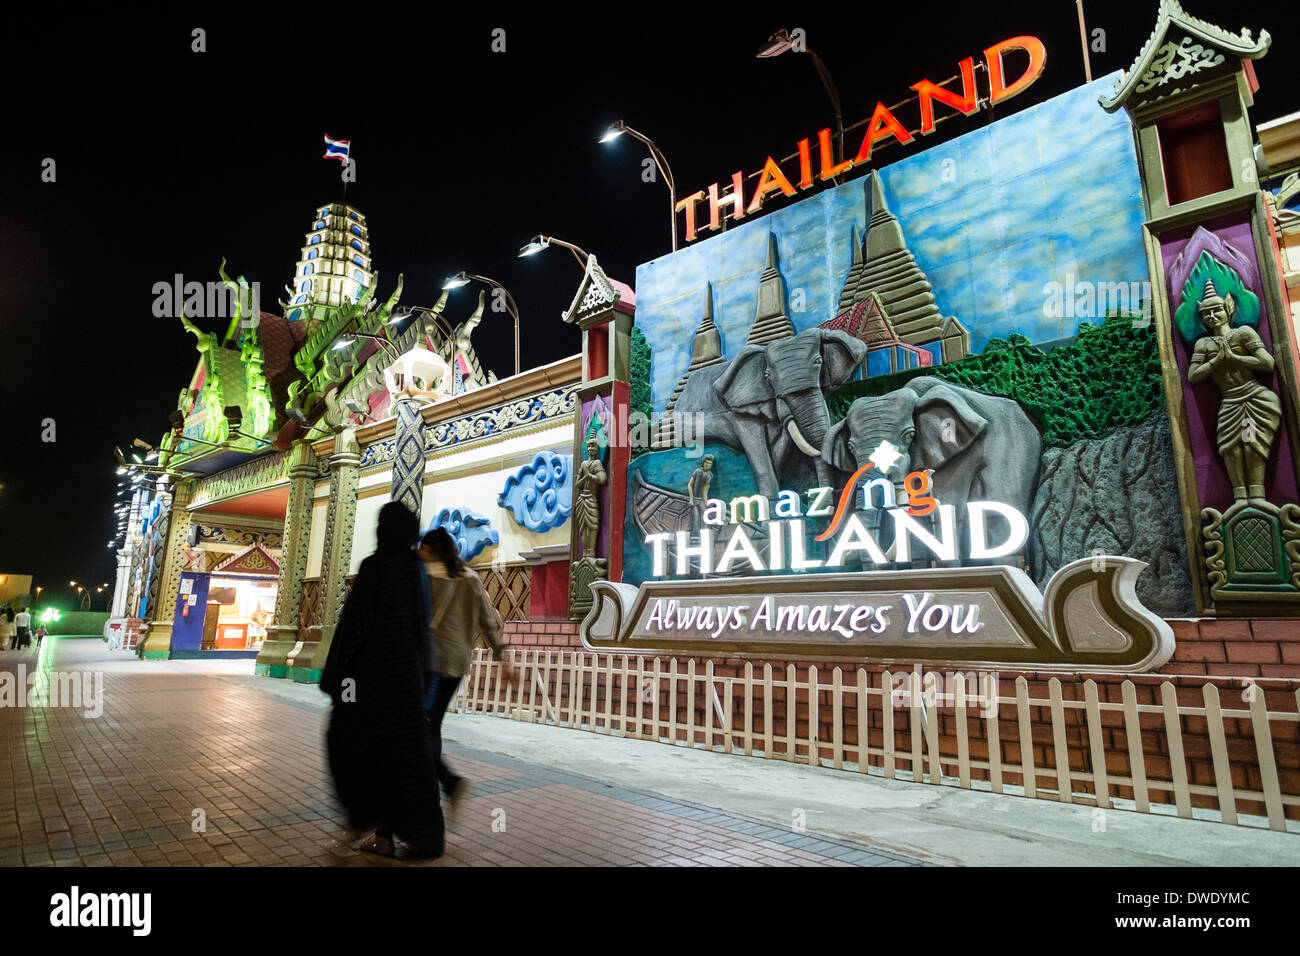 Thailand Paviliion at Global Village tourist cultural attraction in Dubai United Arab Emirates - Stock Image